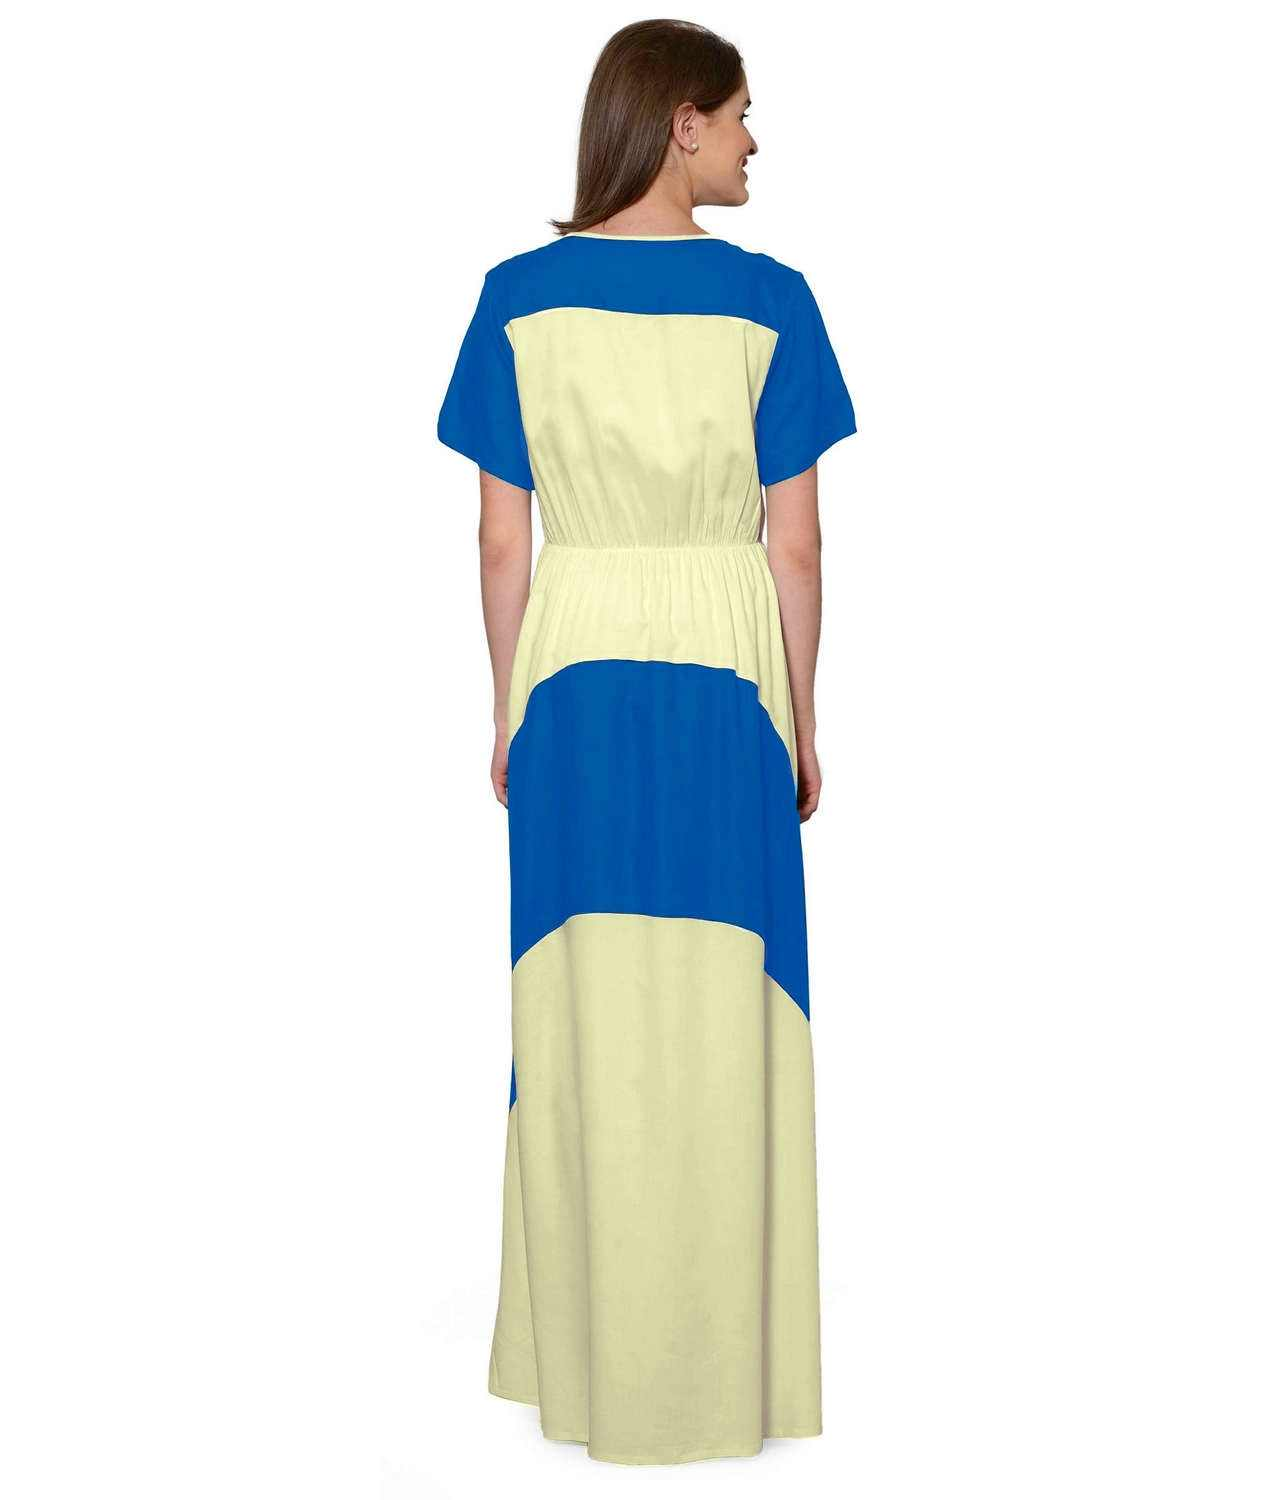 Color Block Slim Fit Maxi Dress Gown in Turquoise:Cream